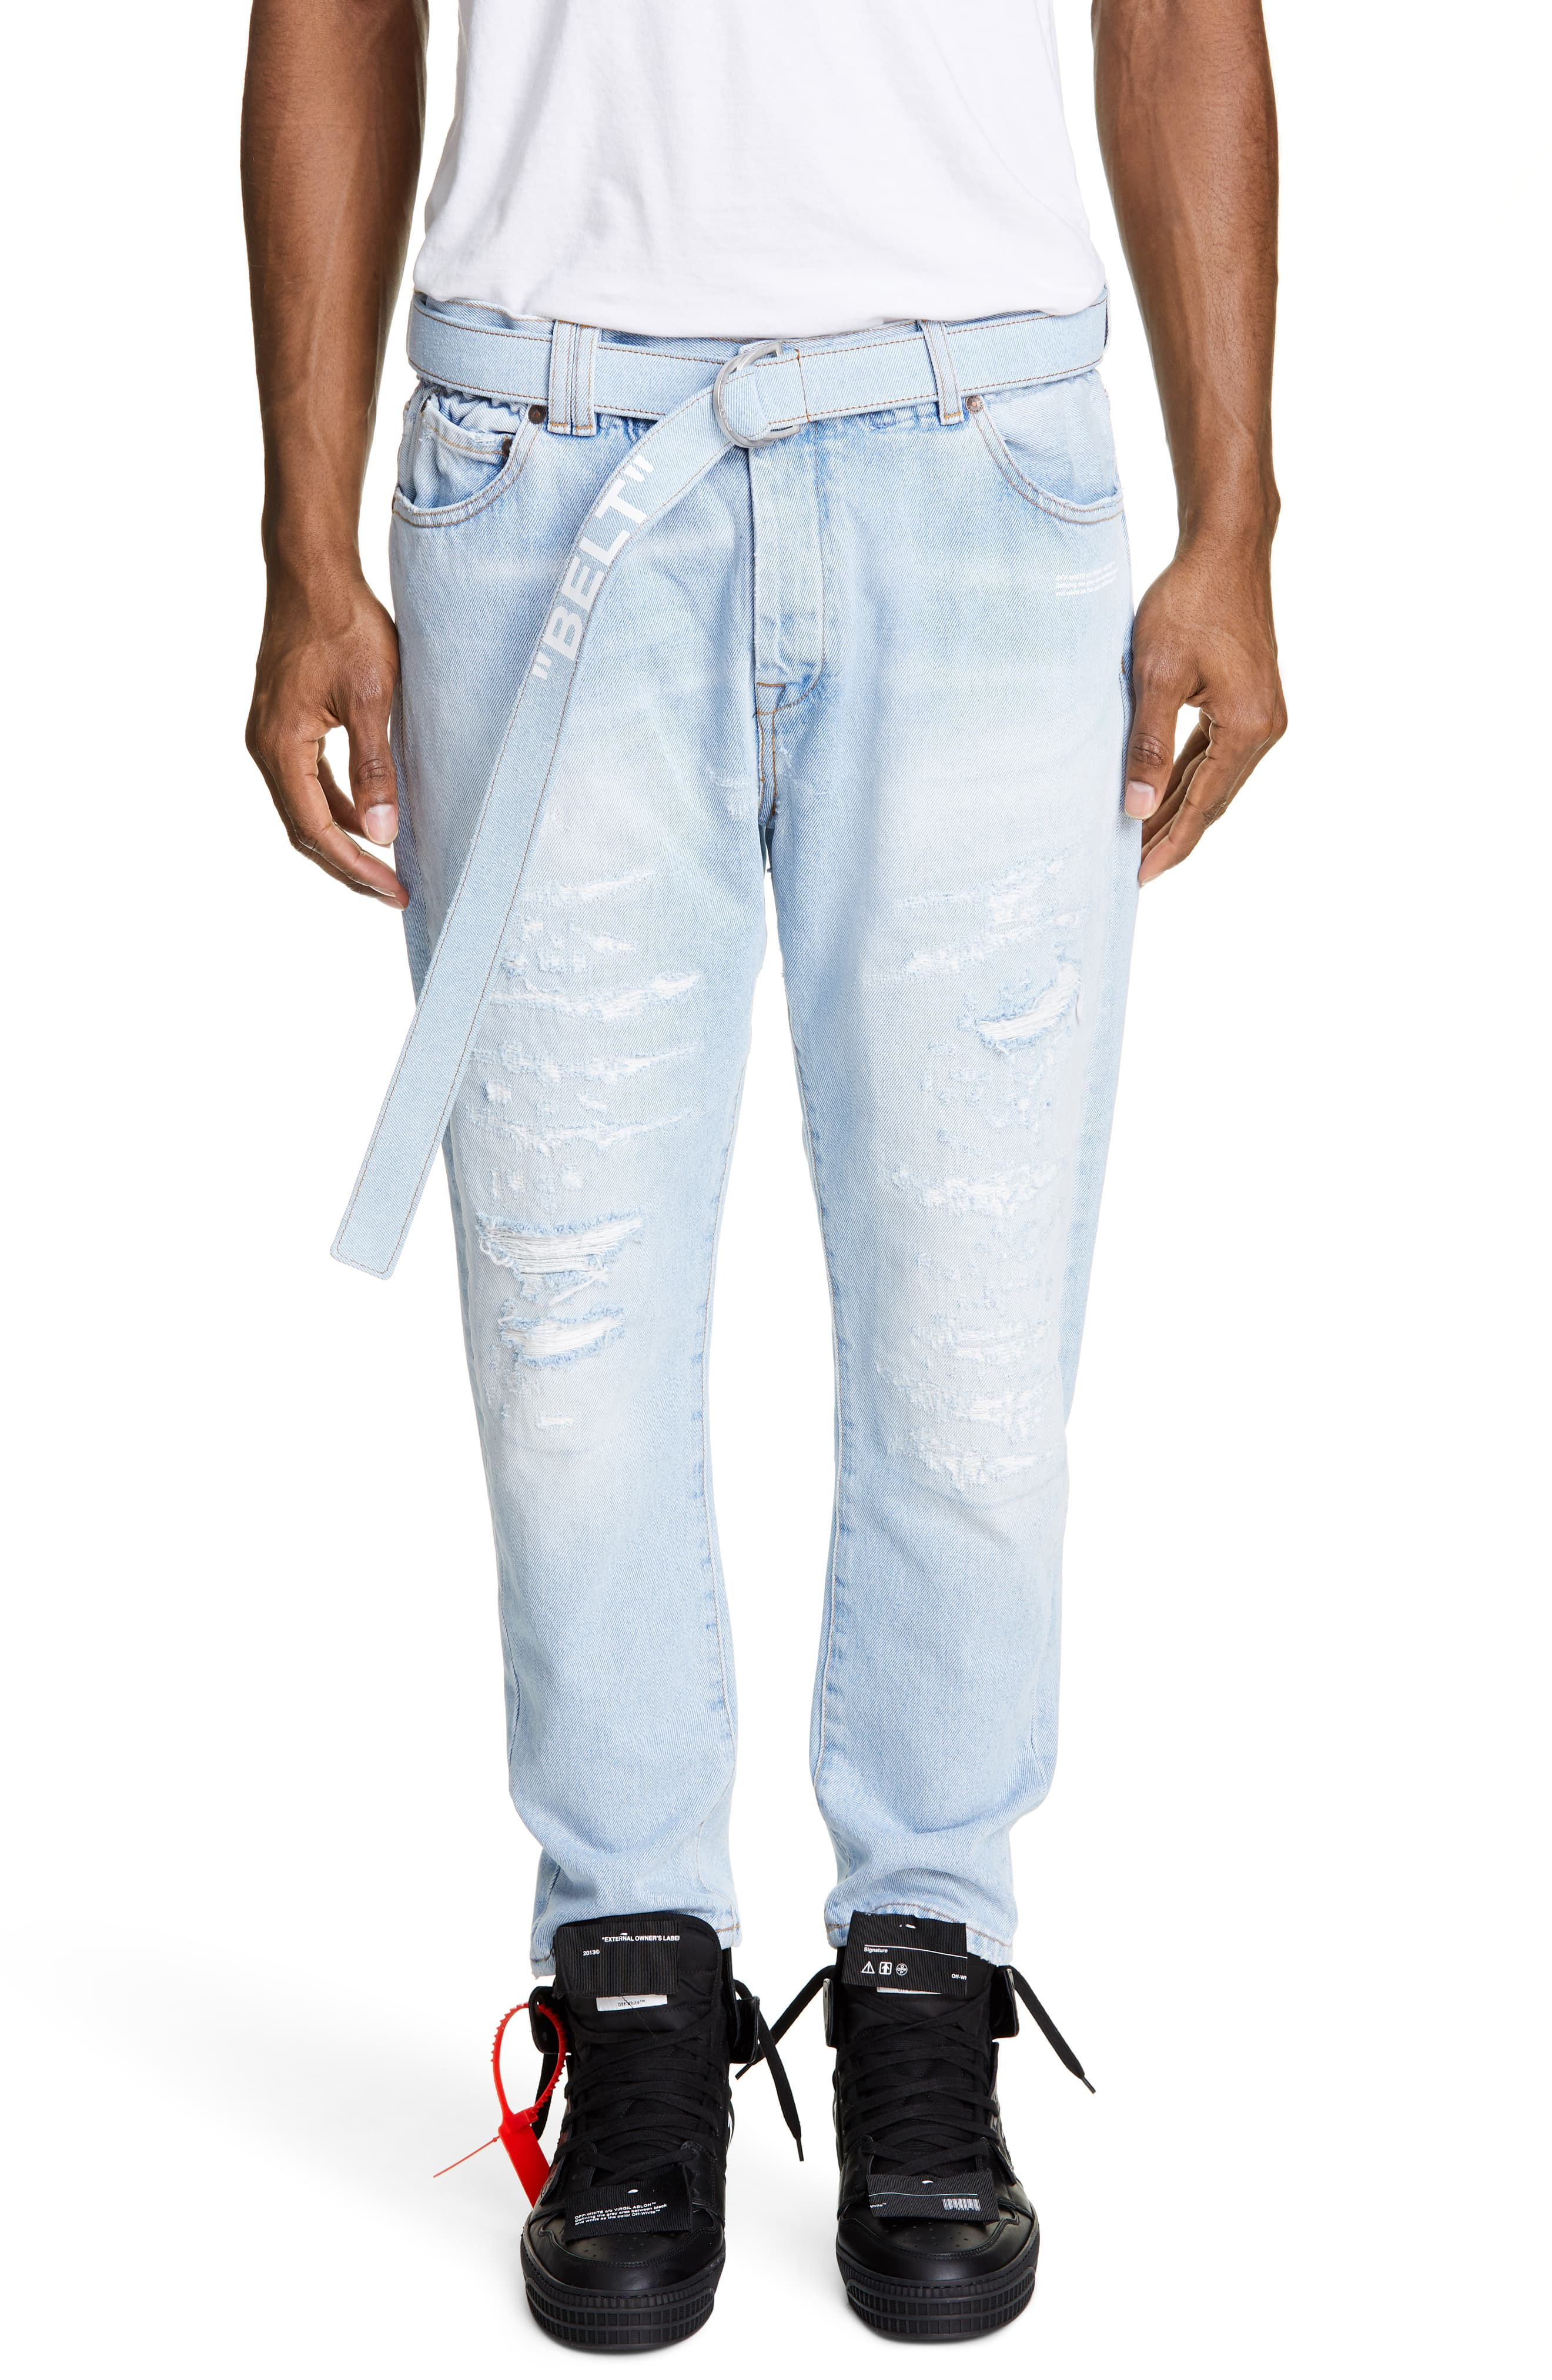 a875c147 Men's Off-White Belted Slim Fit Jeans, Size 36 – Blue